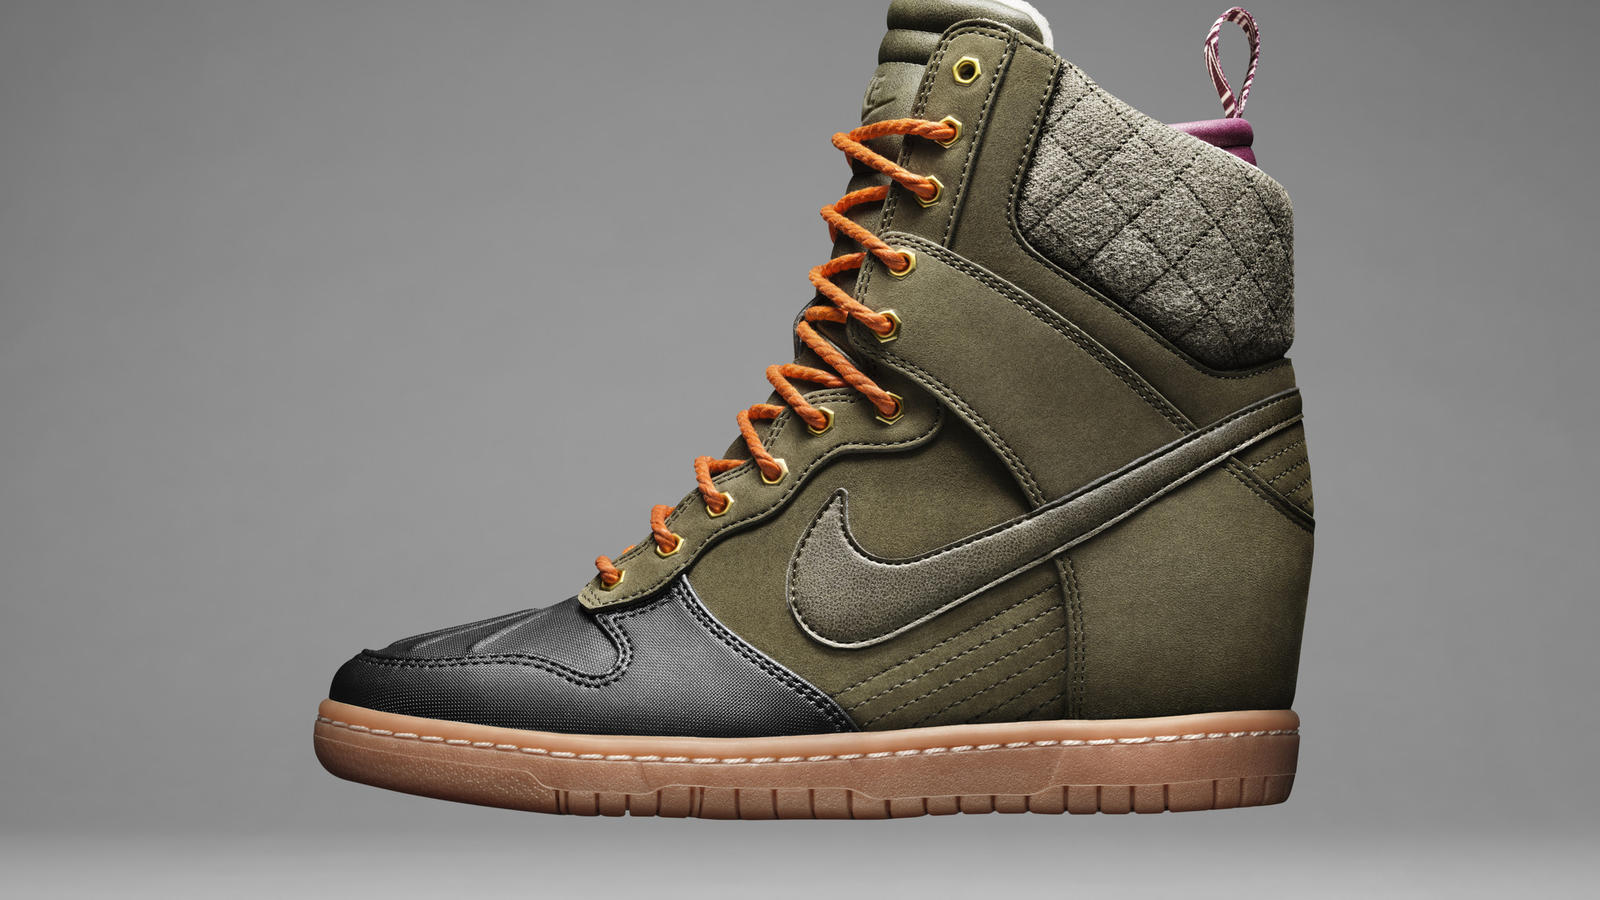 ho13_nsw_sneakerboot_dunk_s_v4